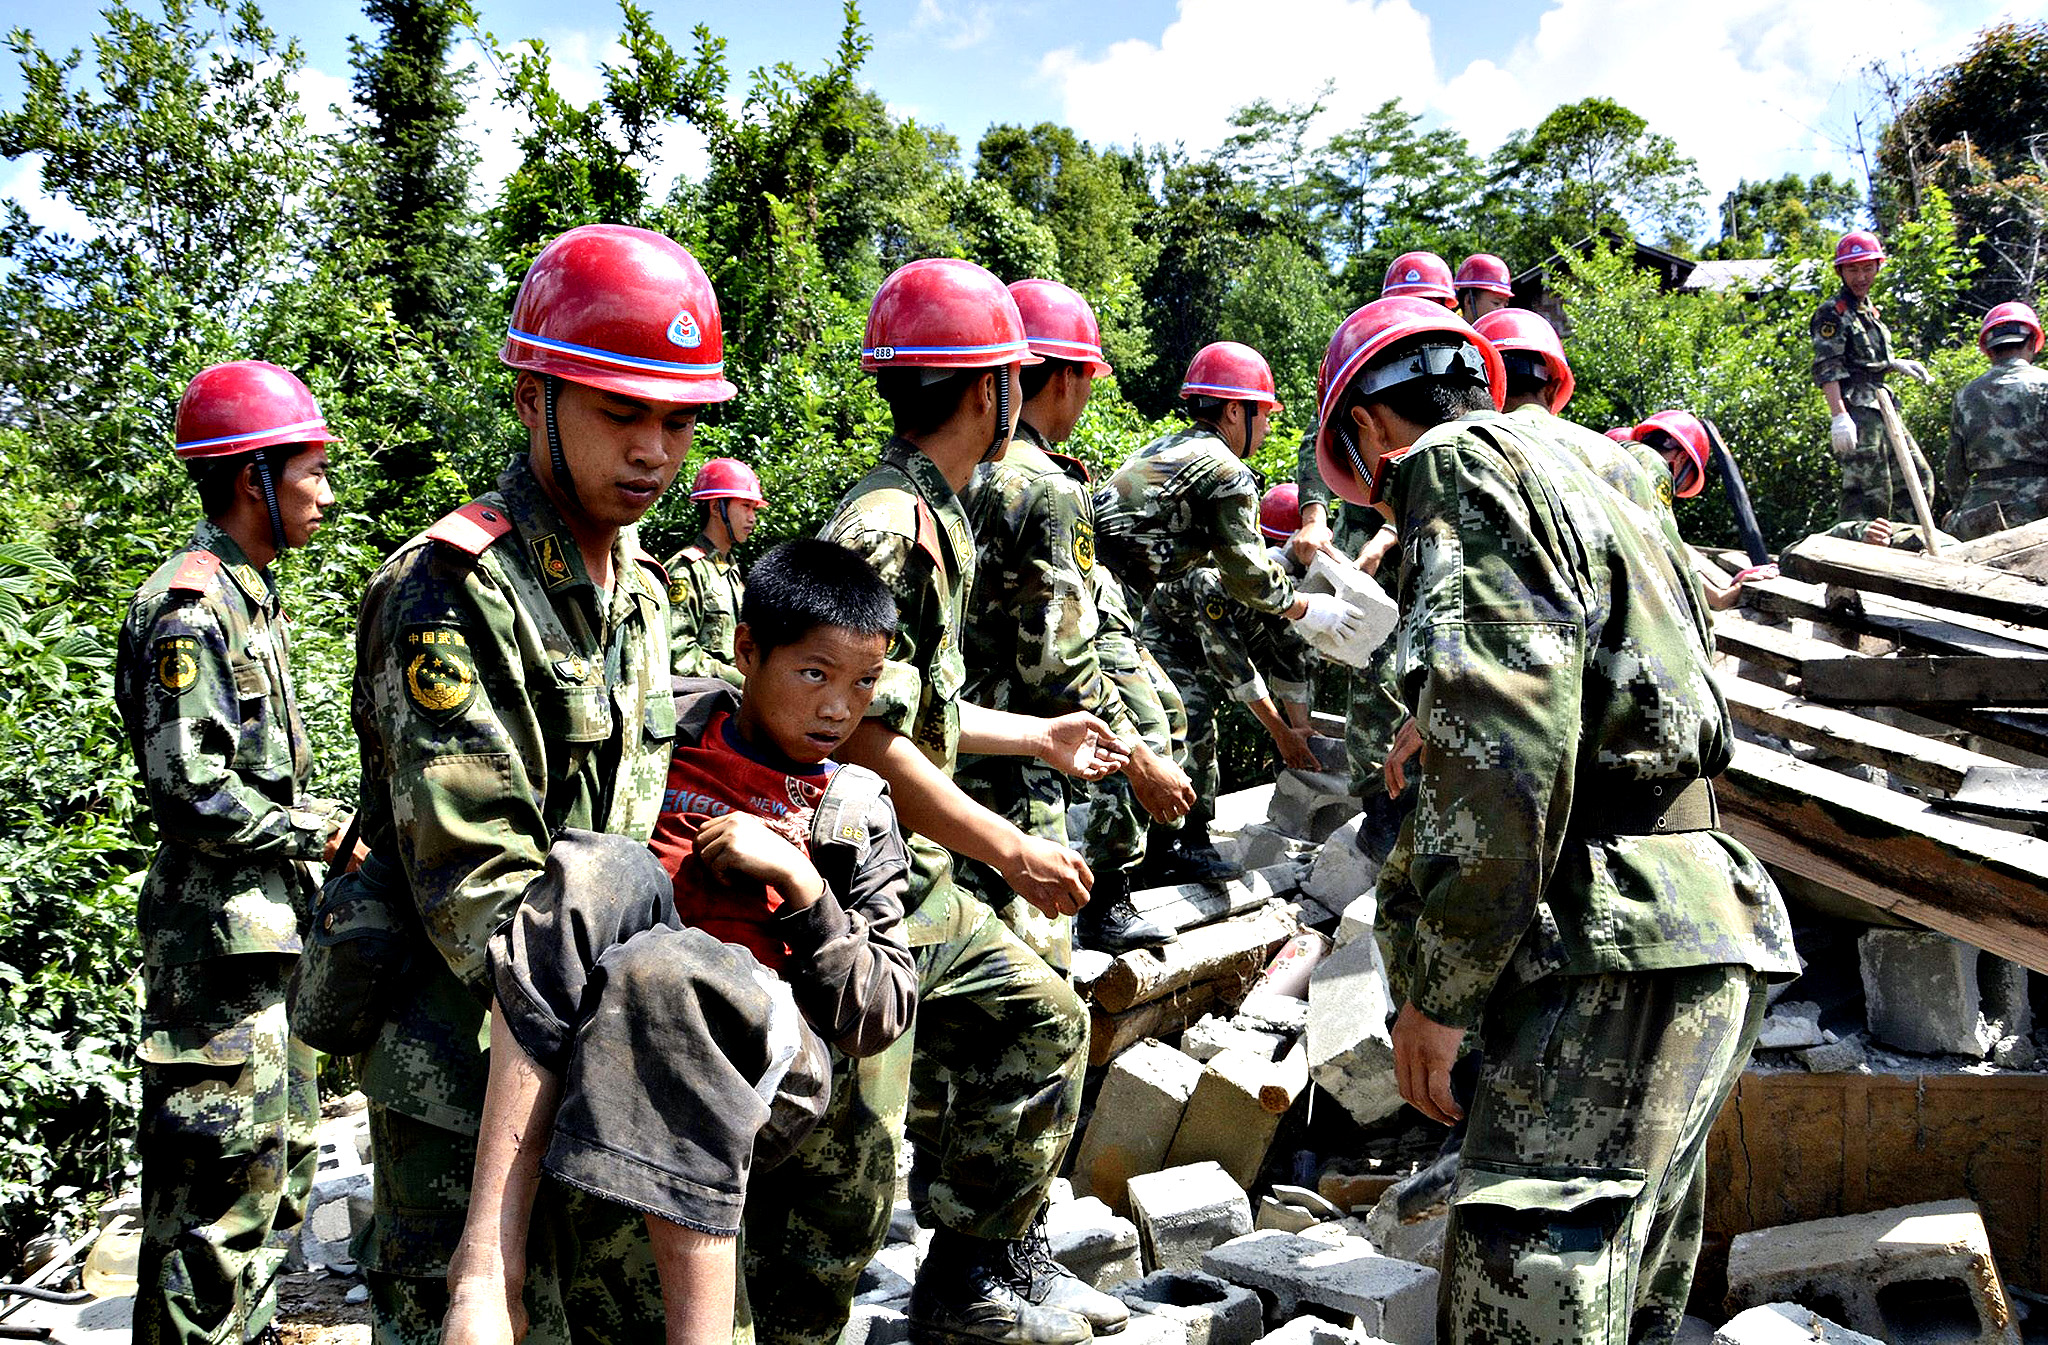 Paramilitary policemen carry out an injured boy after a 6.1 magnitude earthquake hit Yingjiang county, Yunan province. According to local media, at least 34 people were injured in the earthquake on Friday morning.